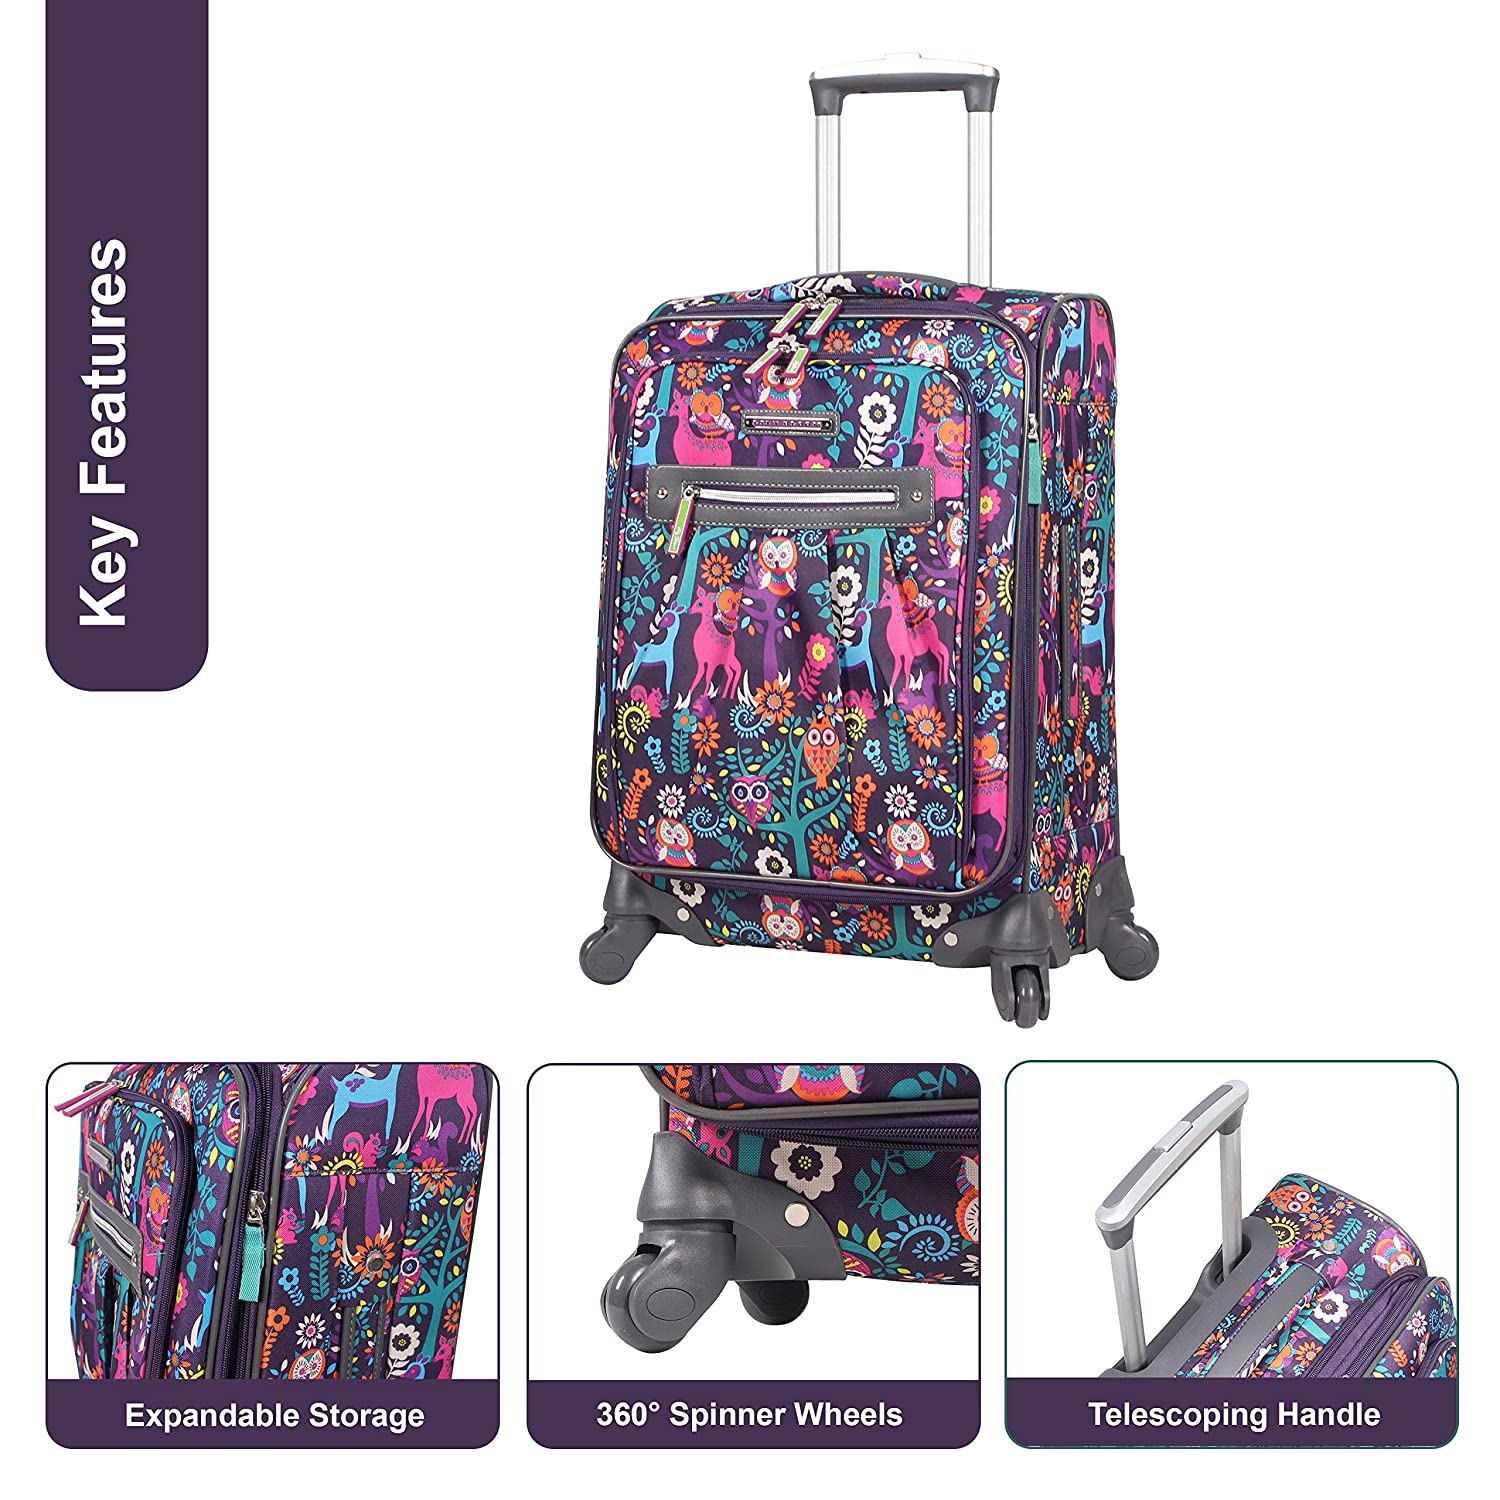 Lily Bloom Luggage Set 4 Piece Suitcase Collection With Spinner Wheels For Woman Wildwoods